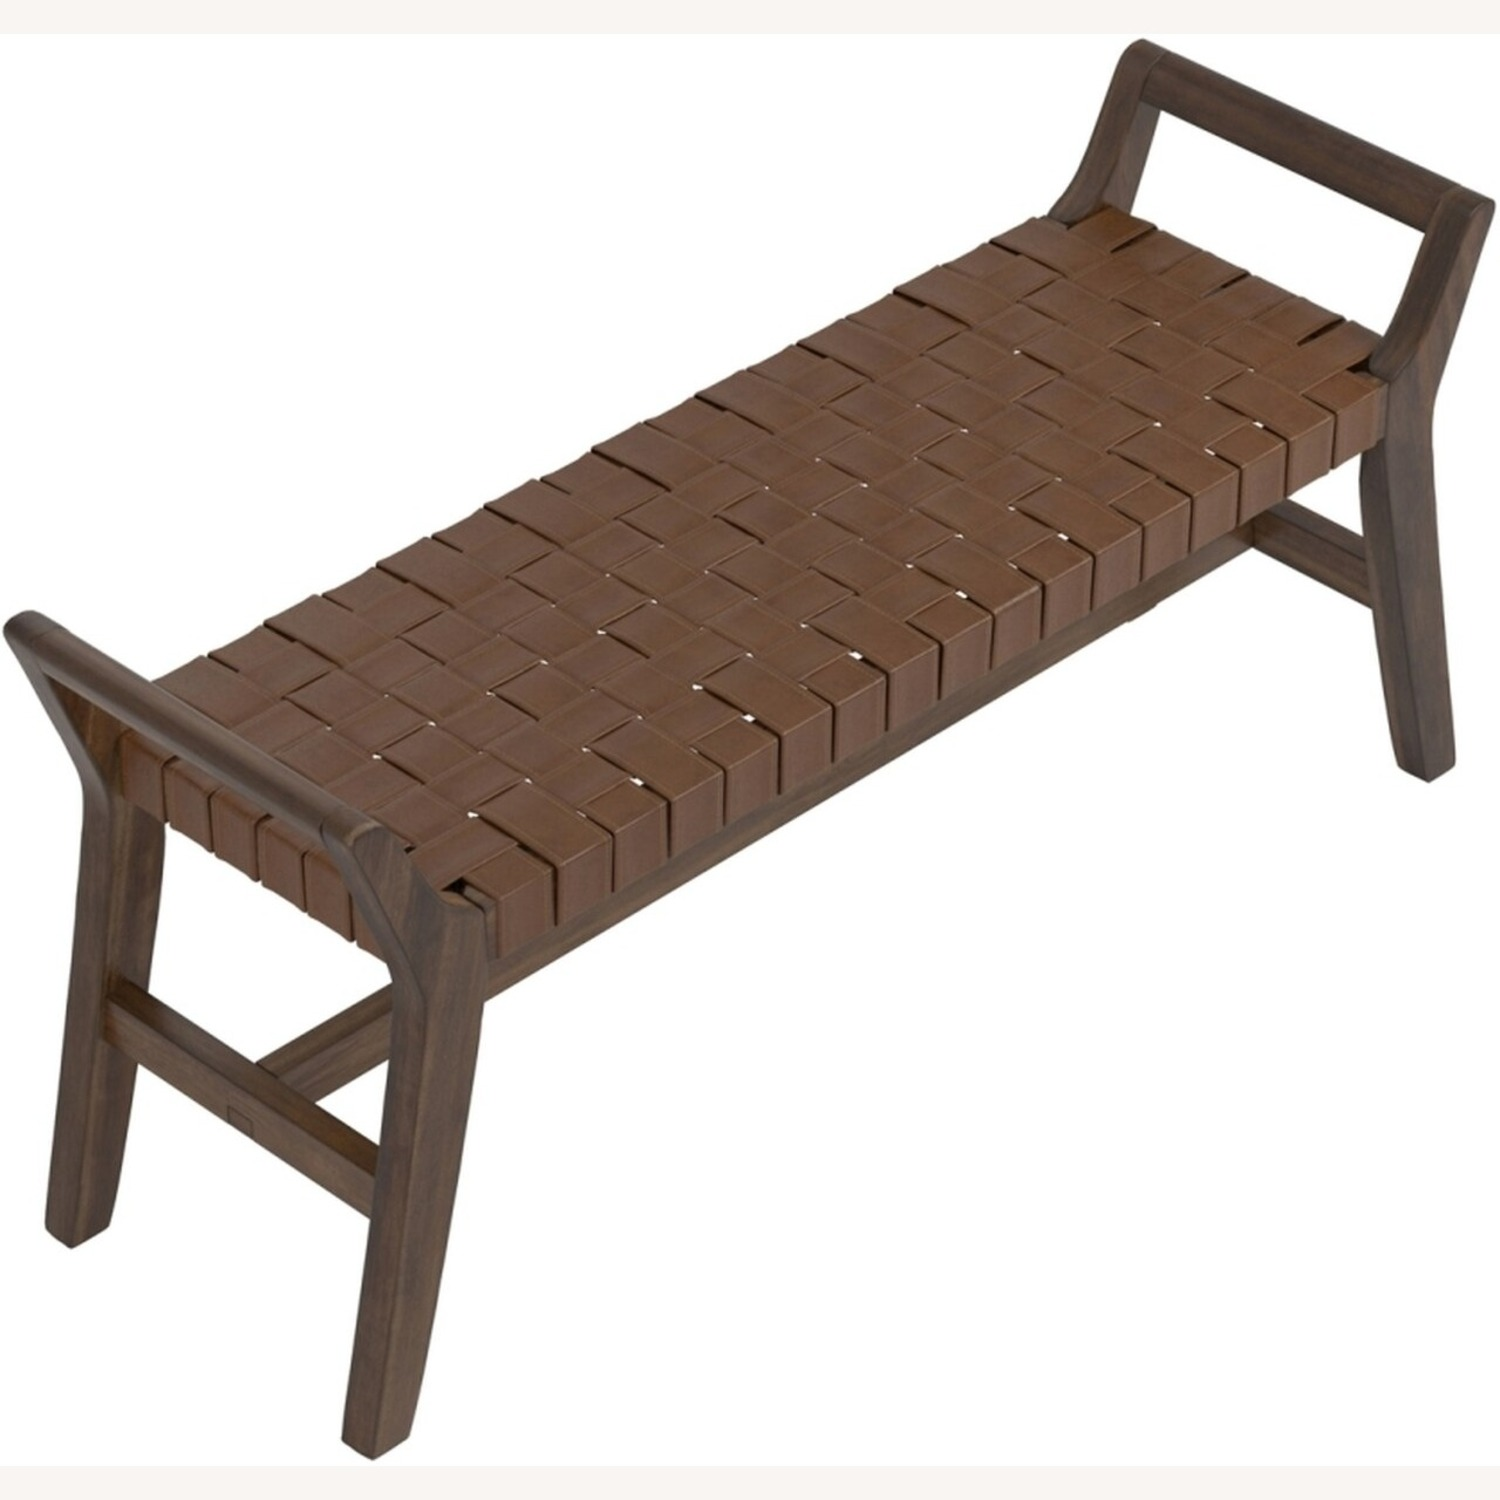 Modern Bench Made W/ Woven Brown Leatherette - image-2